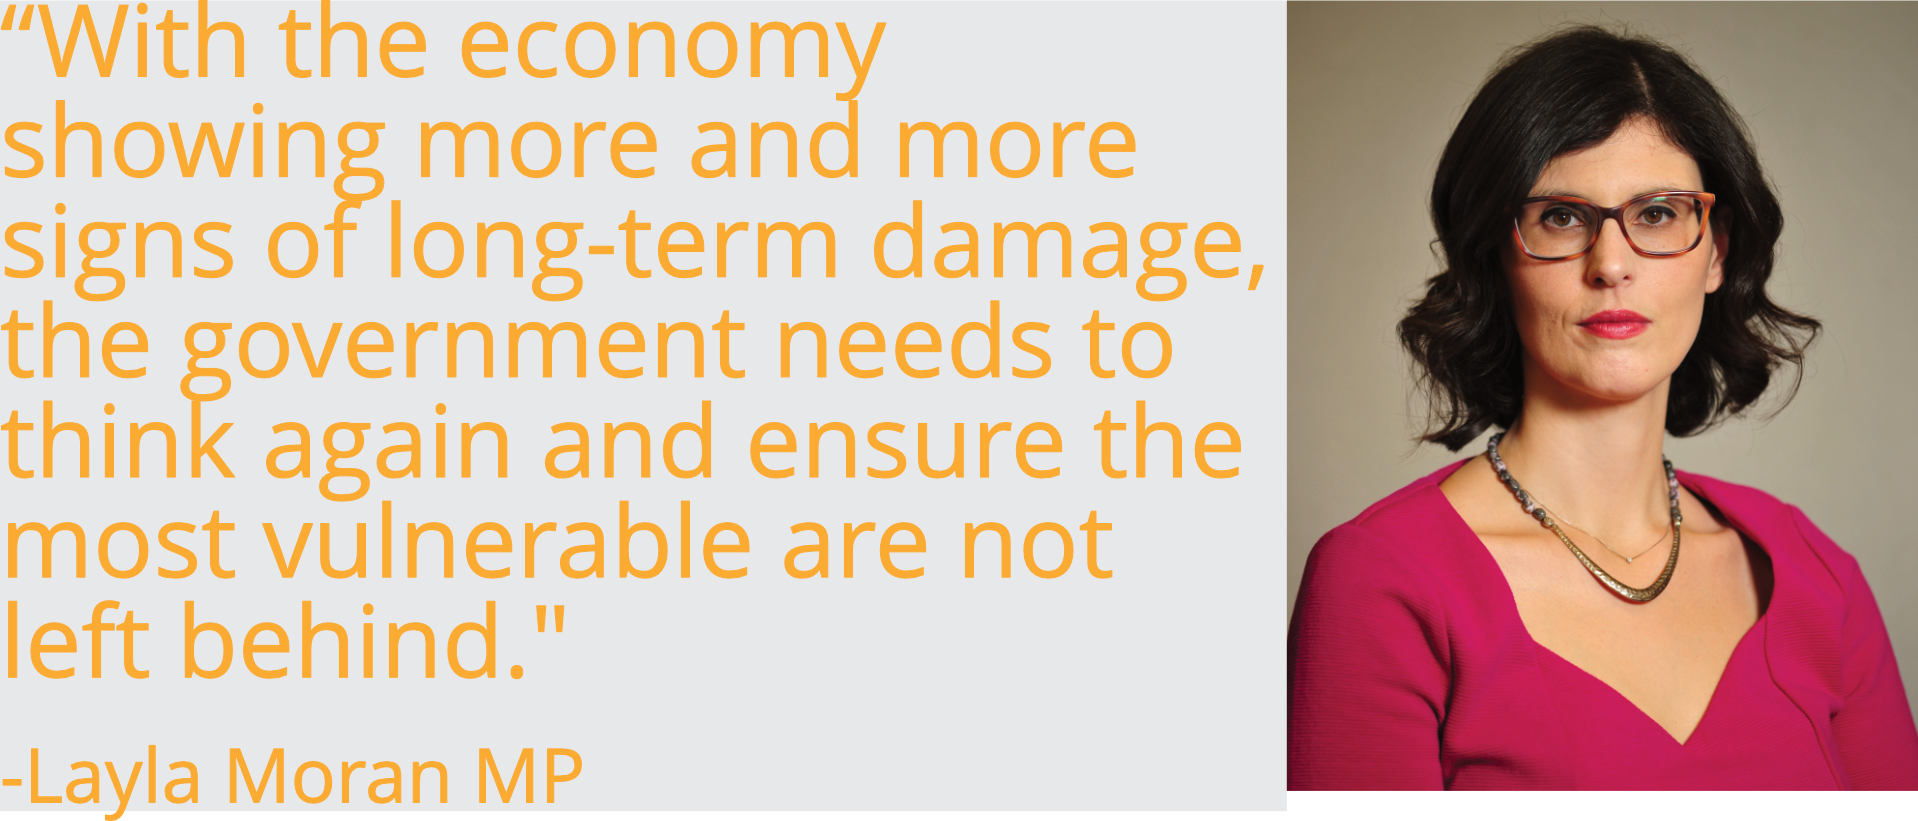 With the economy showing more and more signs of long-term damage, the government needs to think again and ensure the most vulnerable are not left behind.